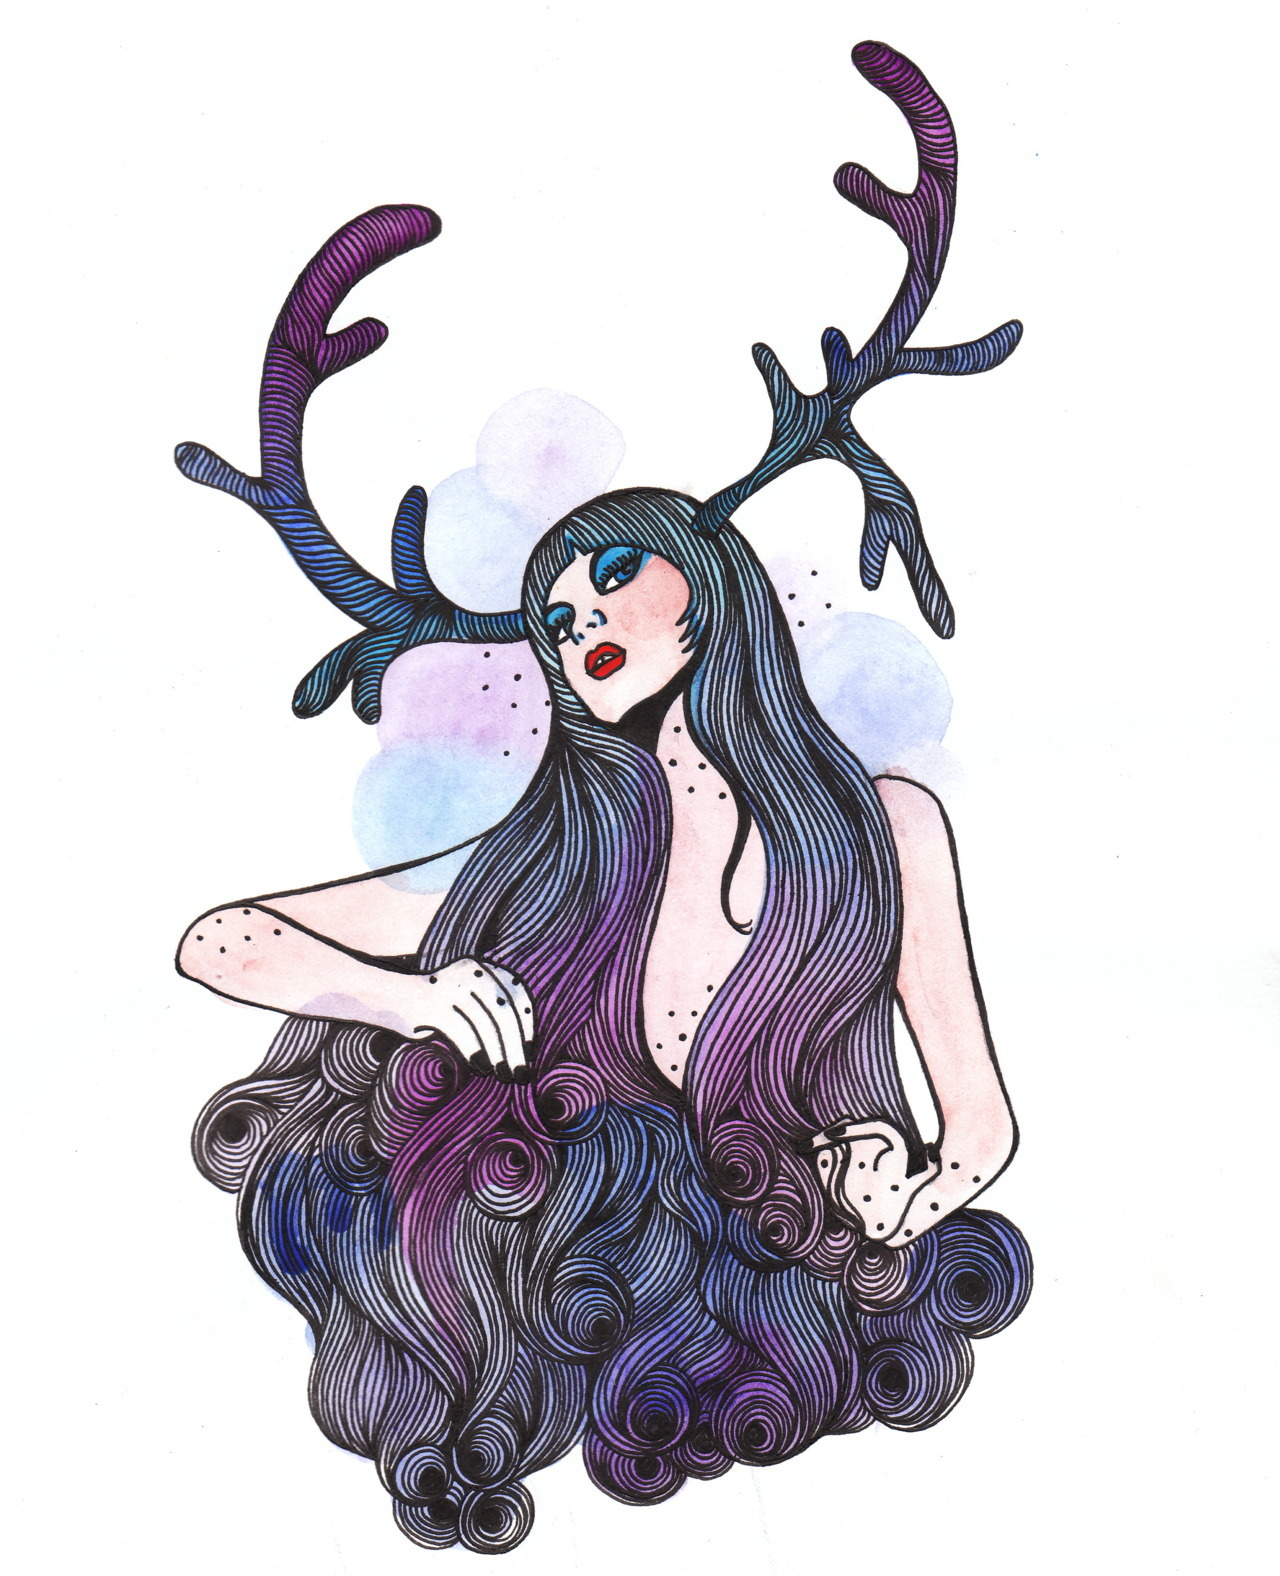 an illustration I did for singer songwriter Erinn